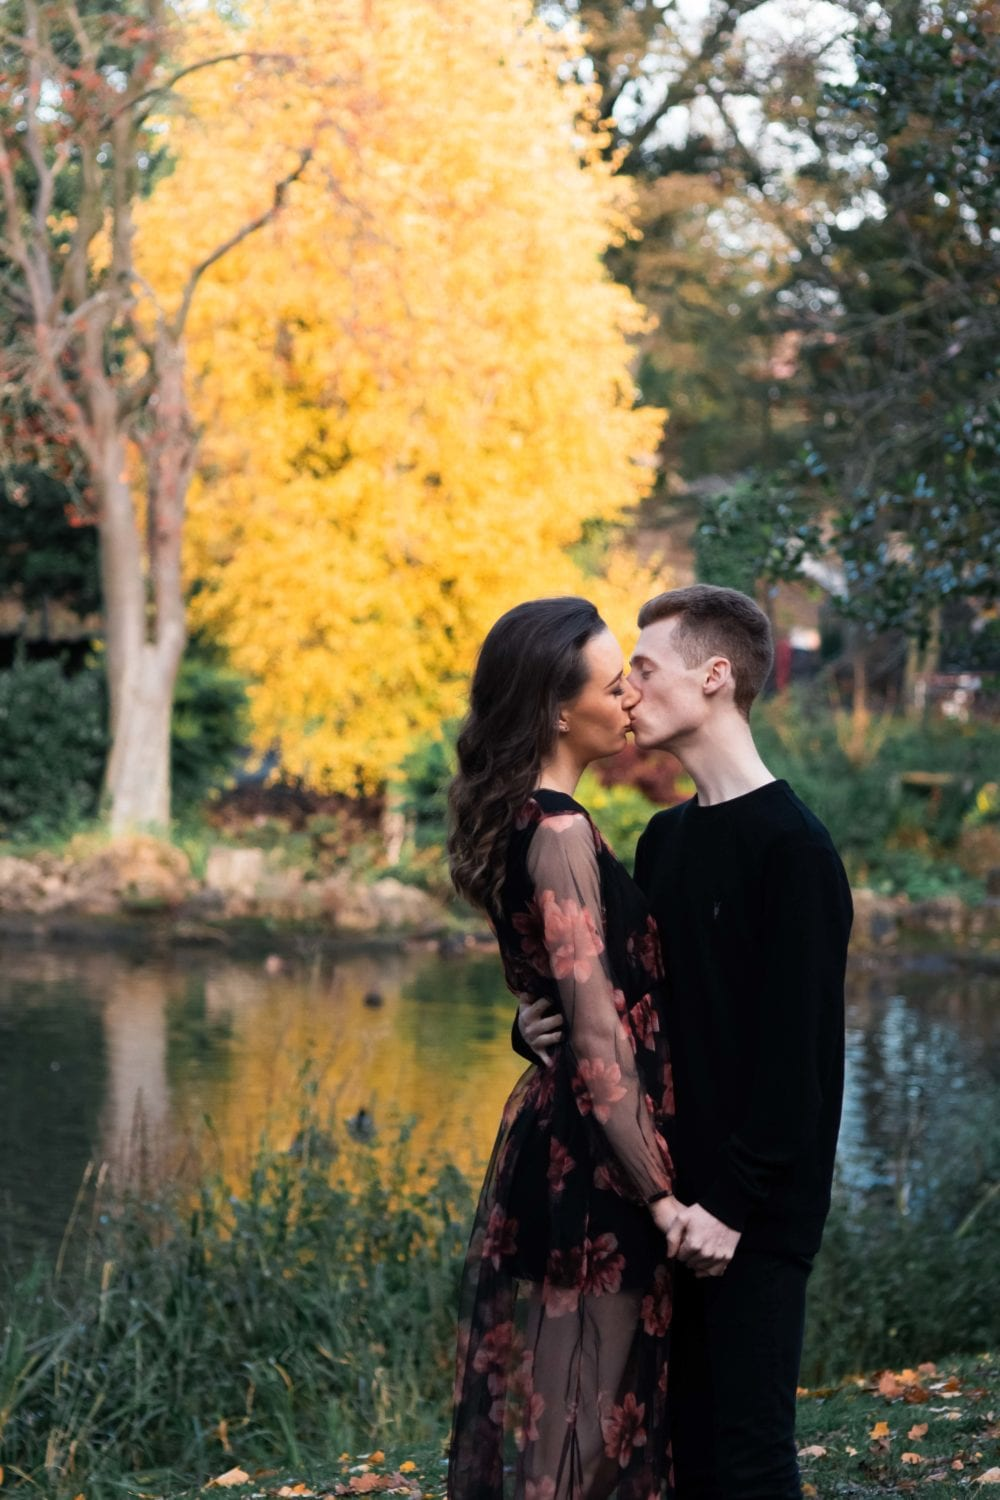 A gorgeous engagement photography shoot with Nicole & Thomas at Barnes Park. After Thomas popping the question to Nicola with Beauty and the Beast themed rose and glass box, they thought it would be good to do a photoshoot in Barnes park but first in their estate and at home to help share the story, with a quick wardrobe change before heading to the park. It was a gorgeous autumn afternoon with some great light peeking through the trees. It was also made easier with Nicola & Thomas been so comfortable with each other making for some great pre wedding photography in Sunderland, Barnes Park.